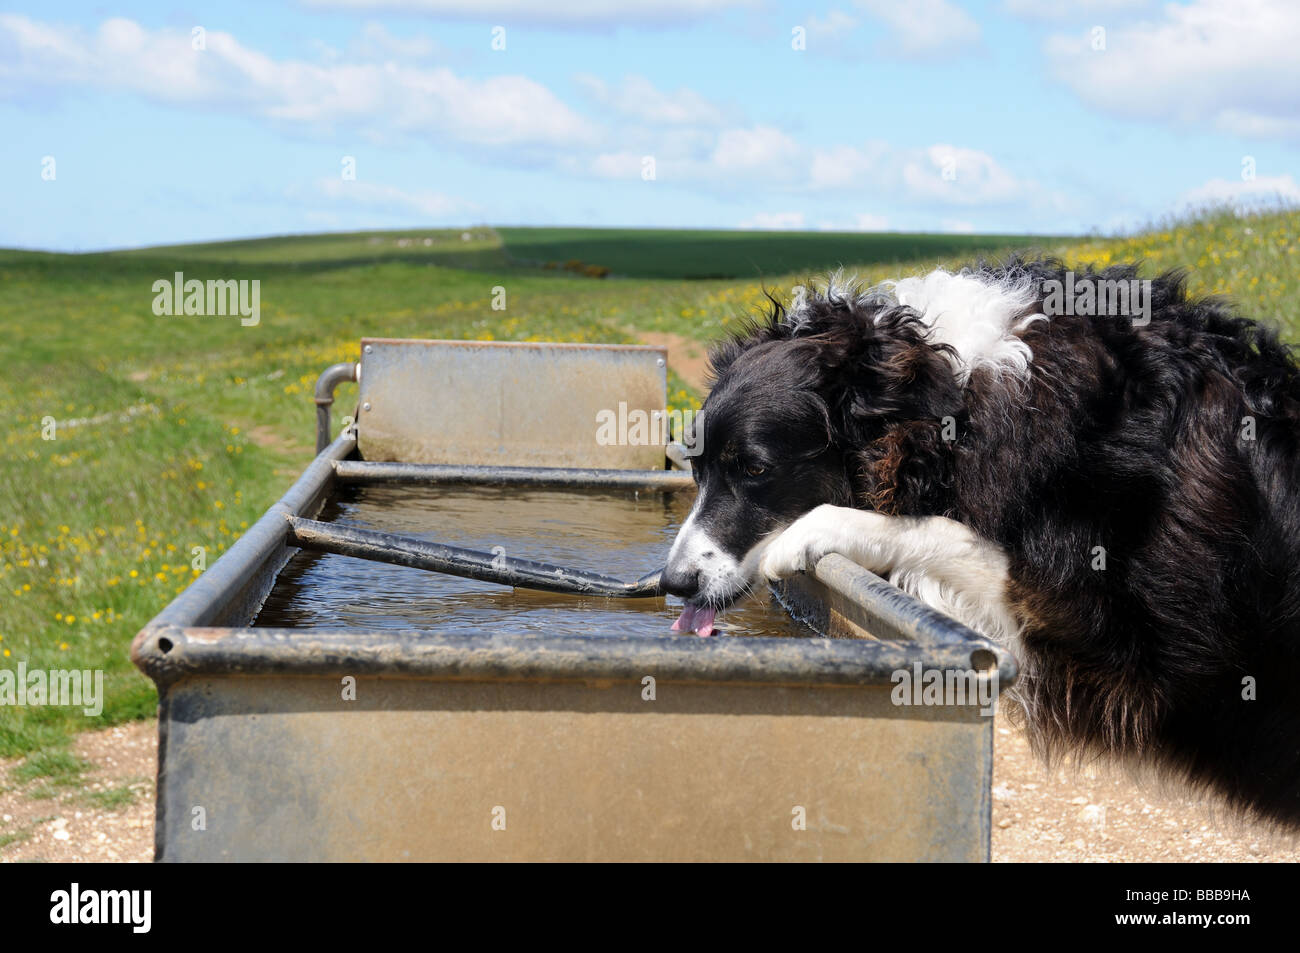 Collie drinking from water trough - Stock Image